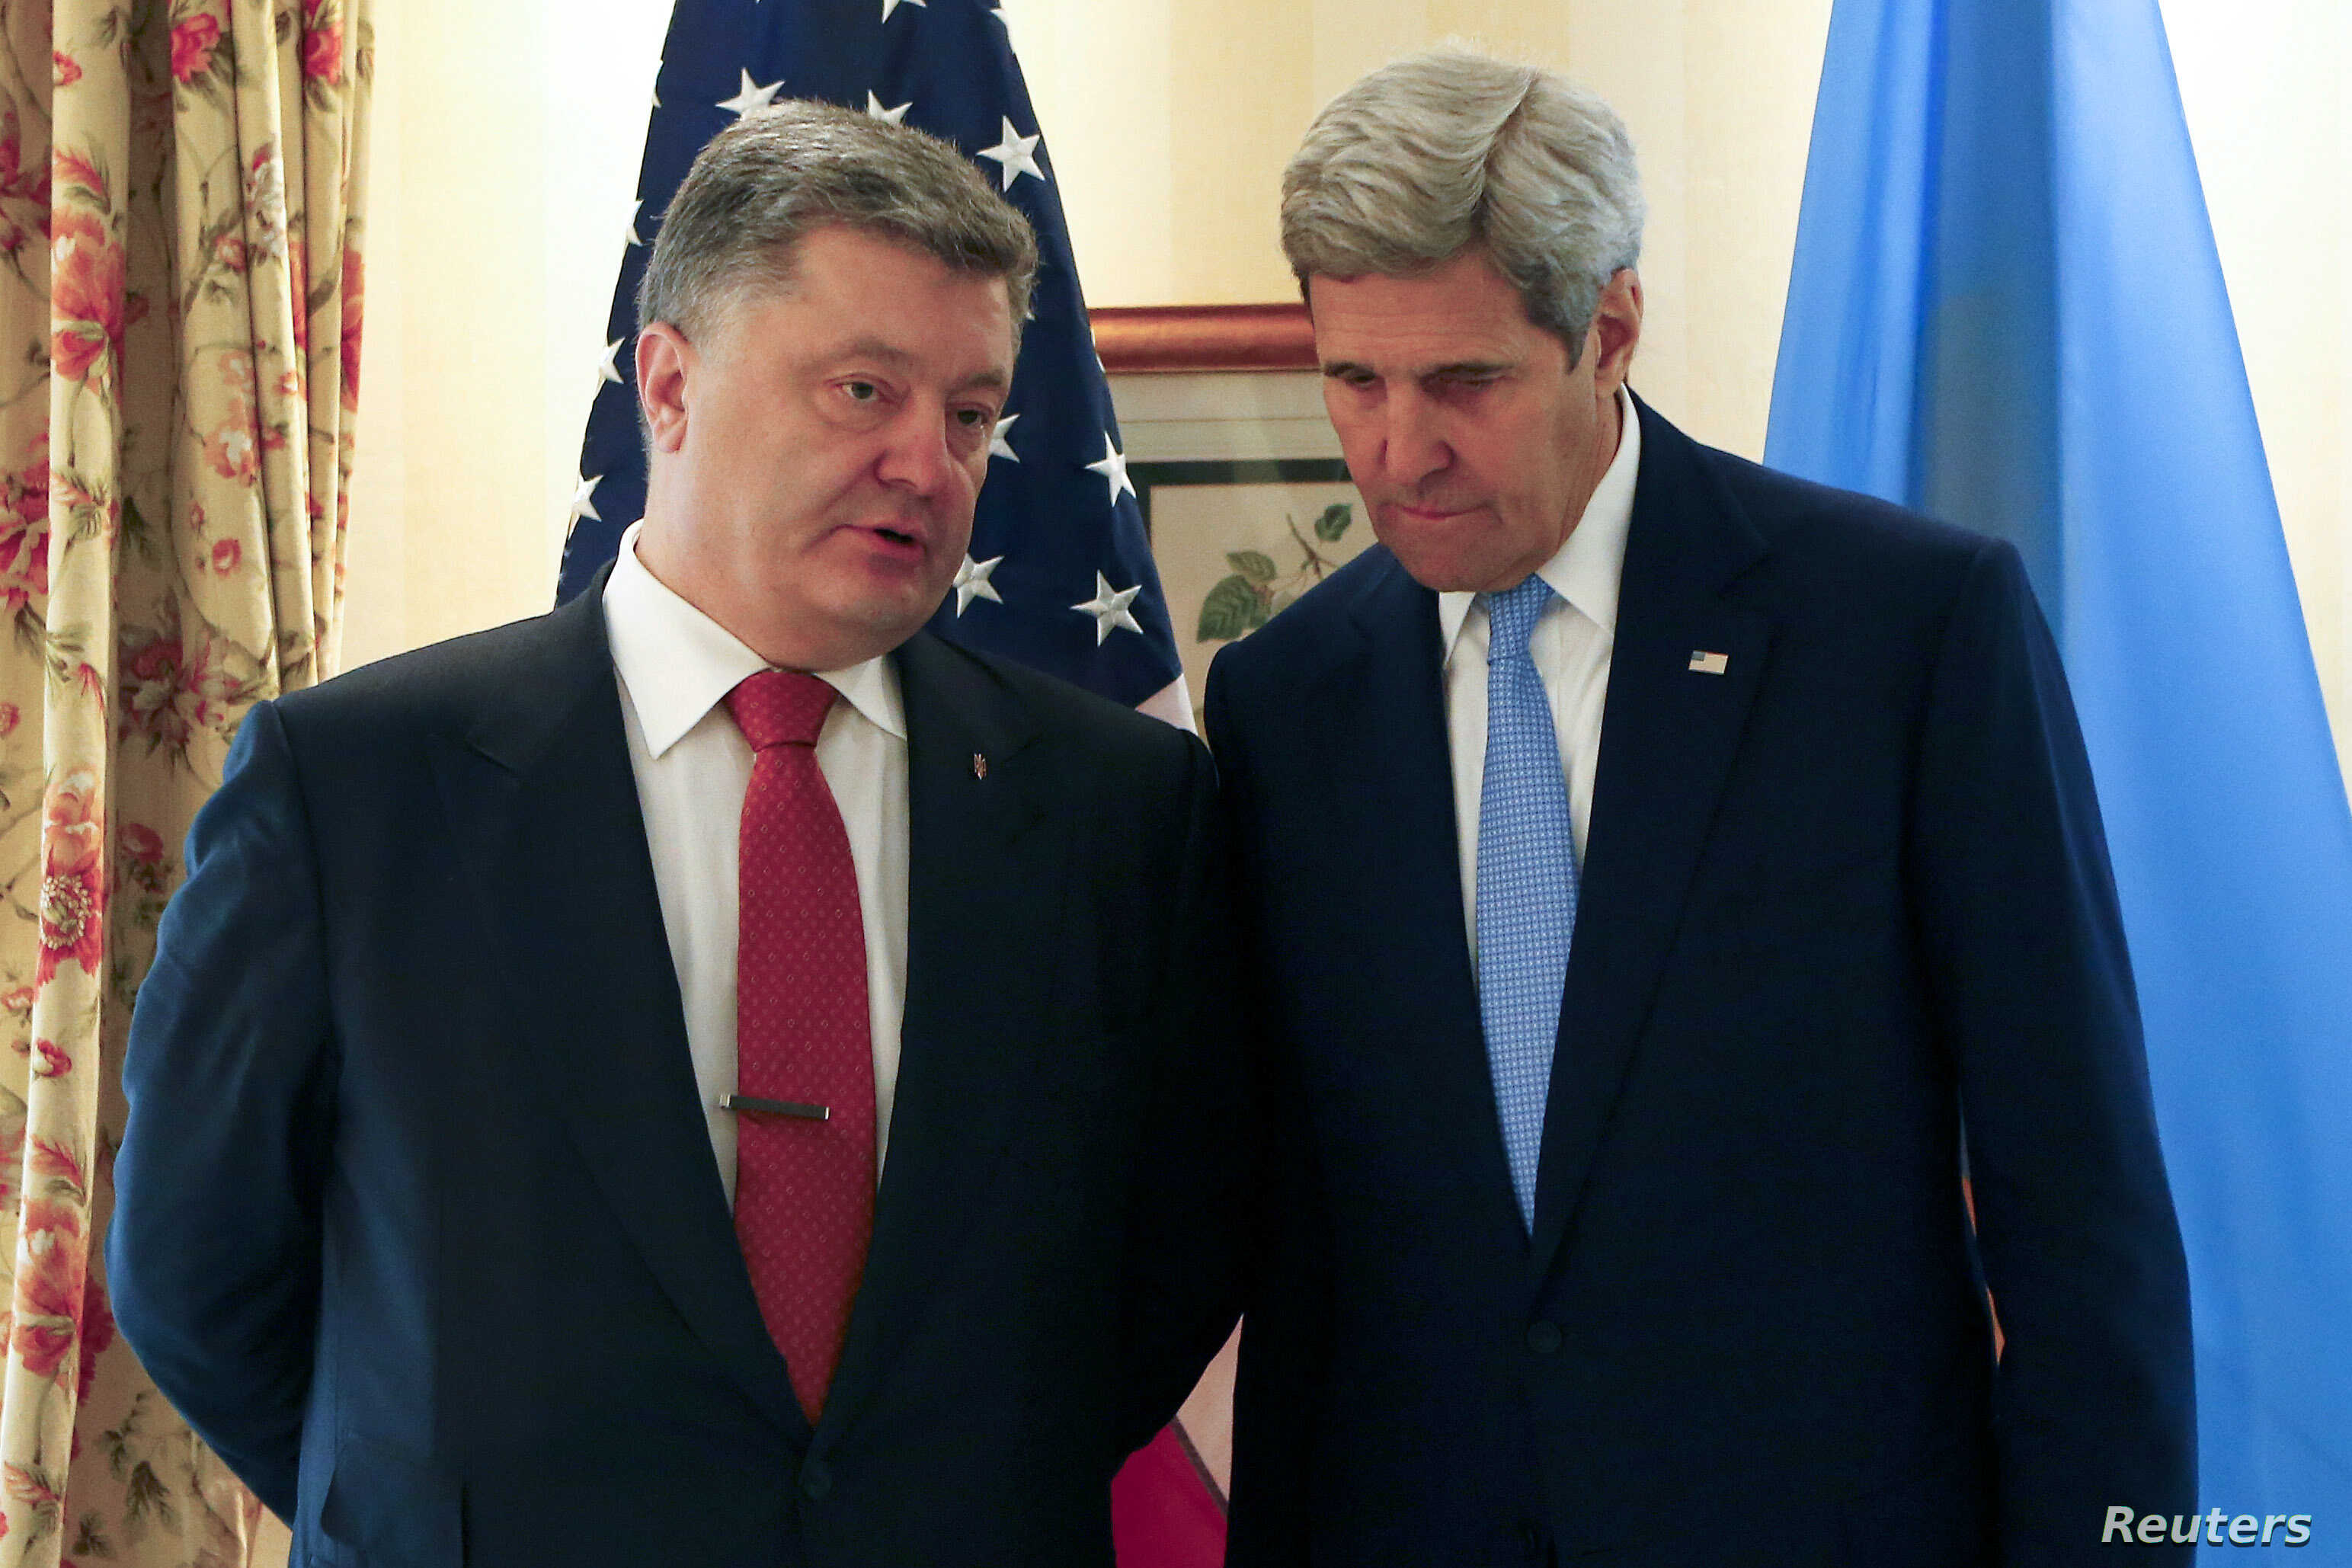 U.S. Secretary of State John Kerry (R) listens to Ukrainian President Petro Poroshenko before their meeting at the Munich Security Conference in Munich, Germany, Feb. 13, 2016.